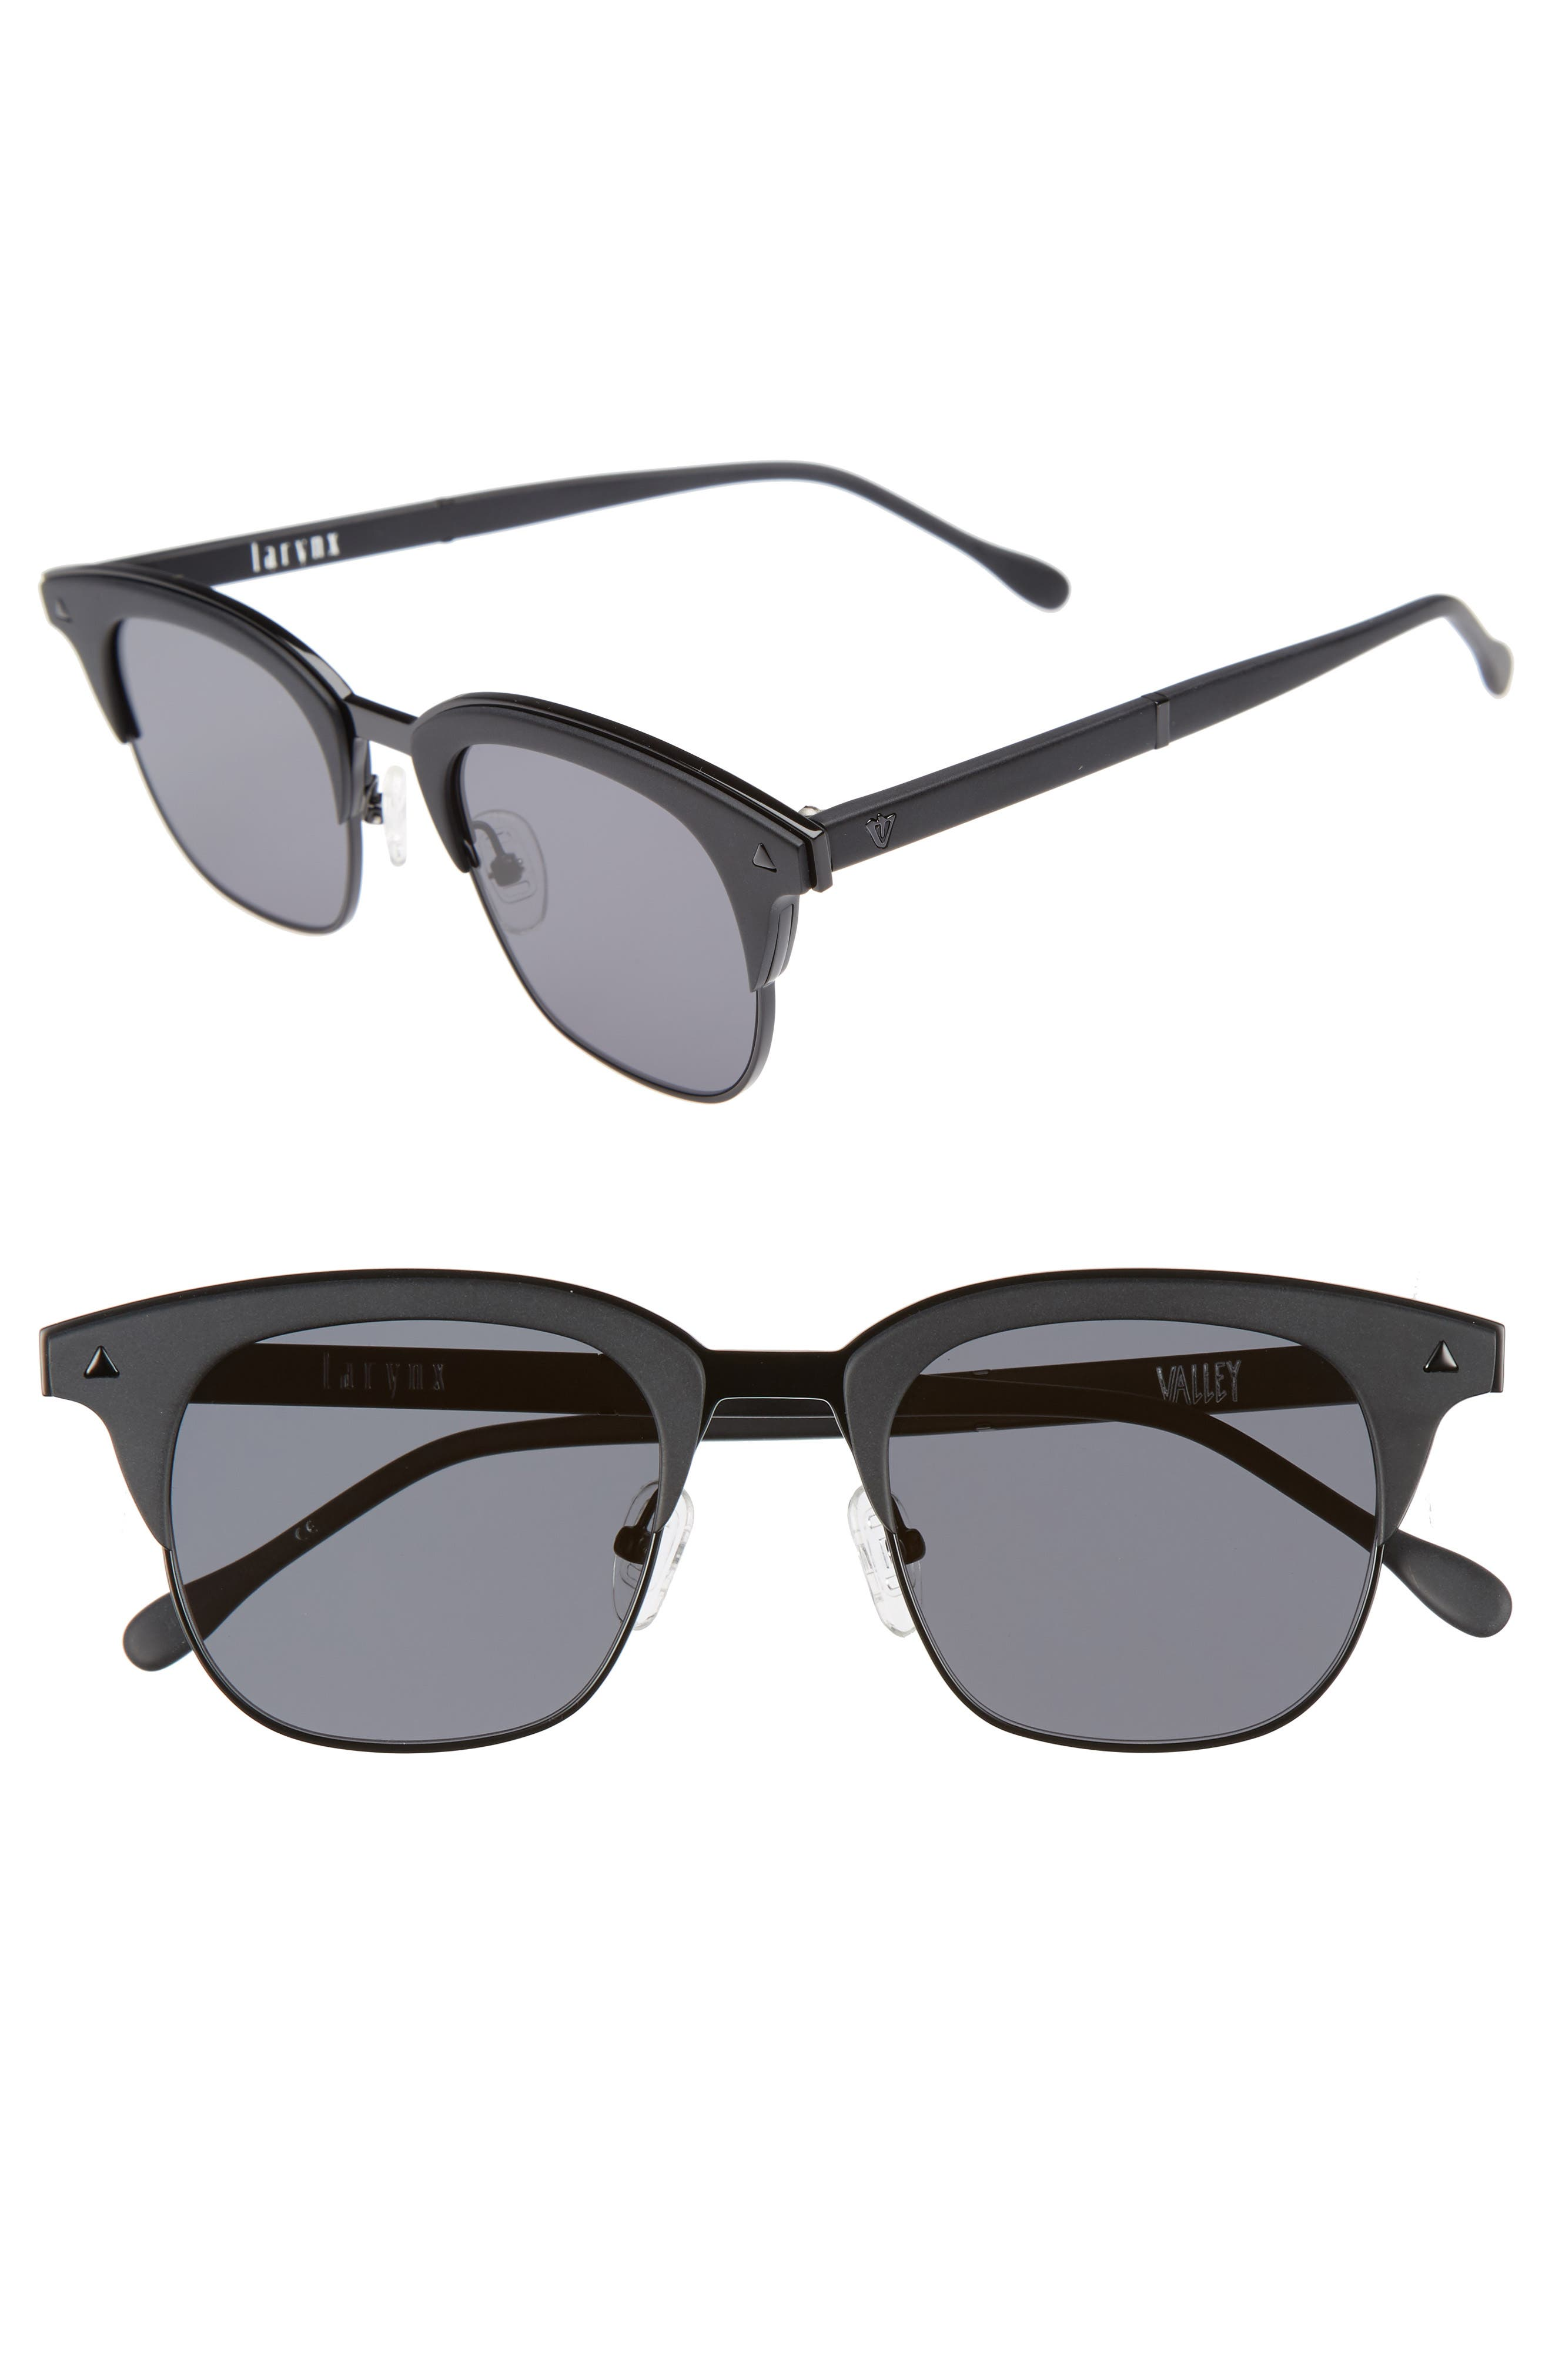 VALLEY Larynx 47mm Retro Sunglasses